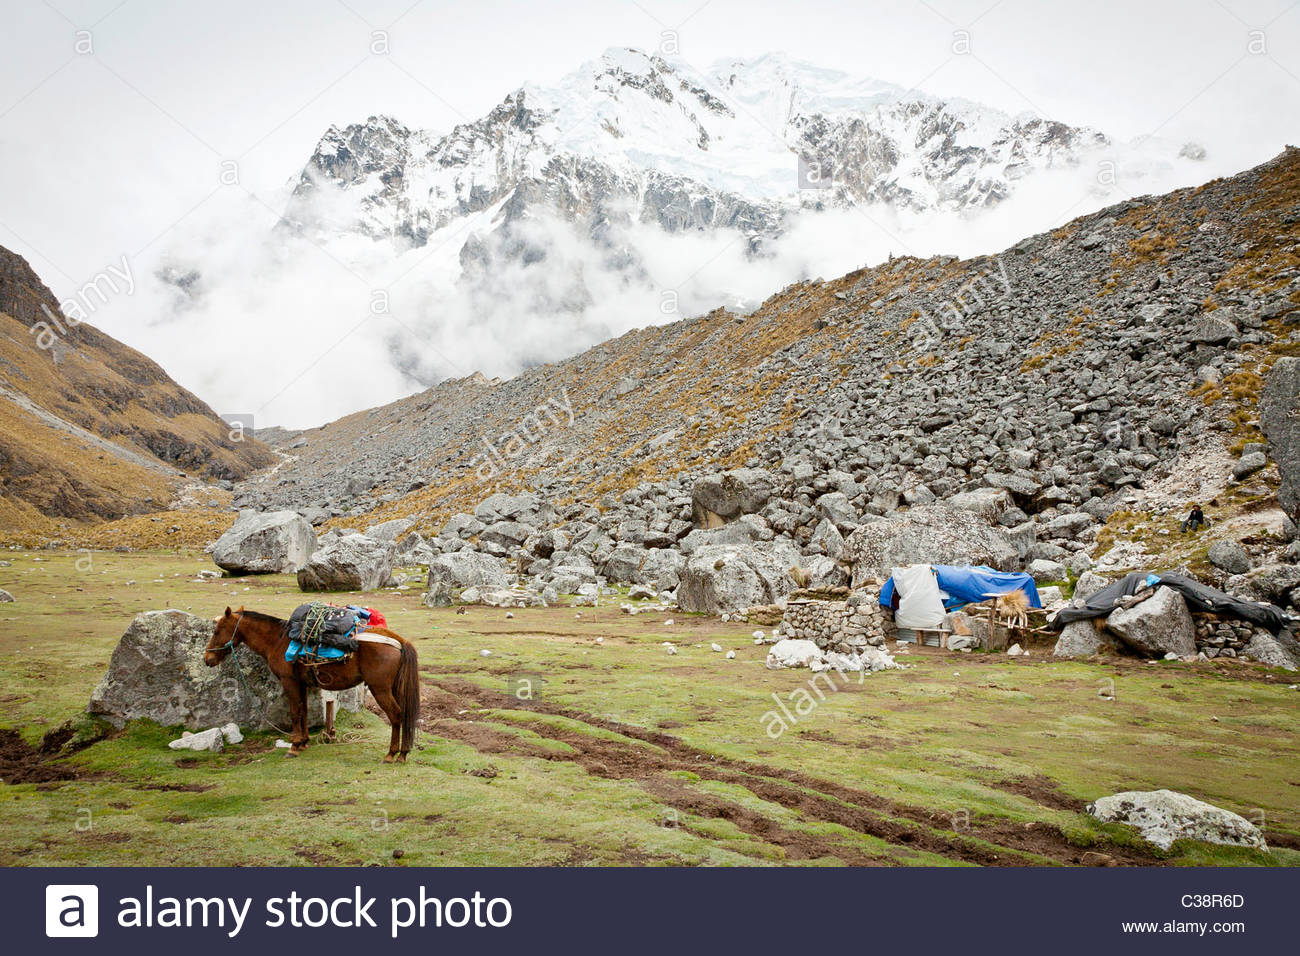 A pack-horse and a dog in front of Salkantay mountain just before the final ascent to Salkantay Pass, Peru. - Stock Image